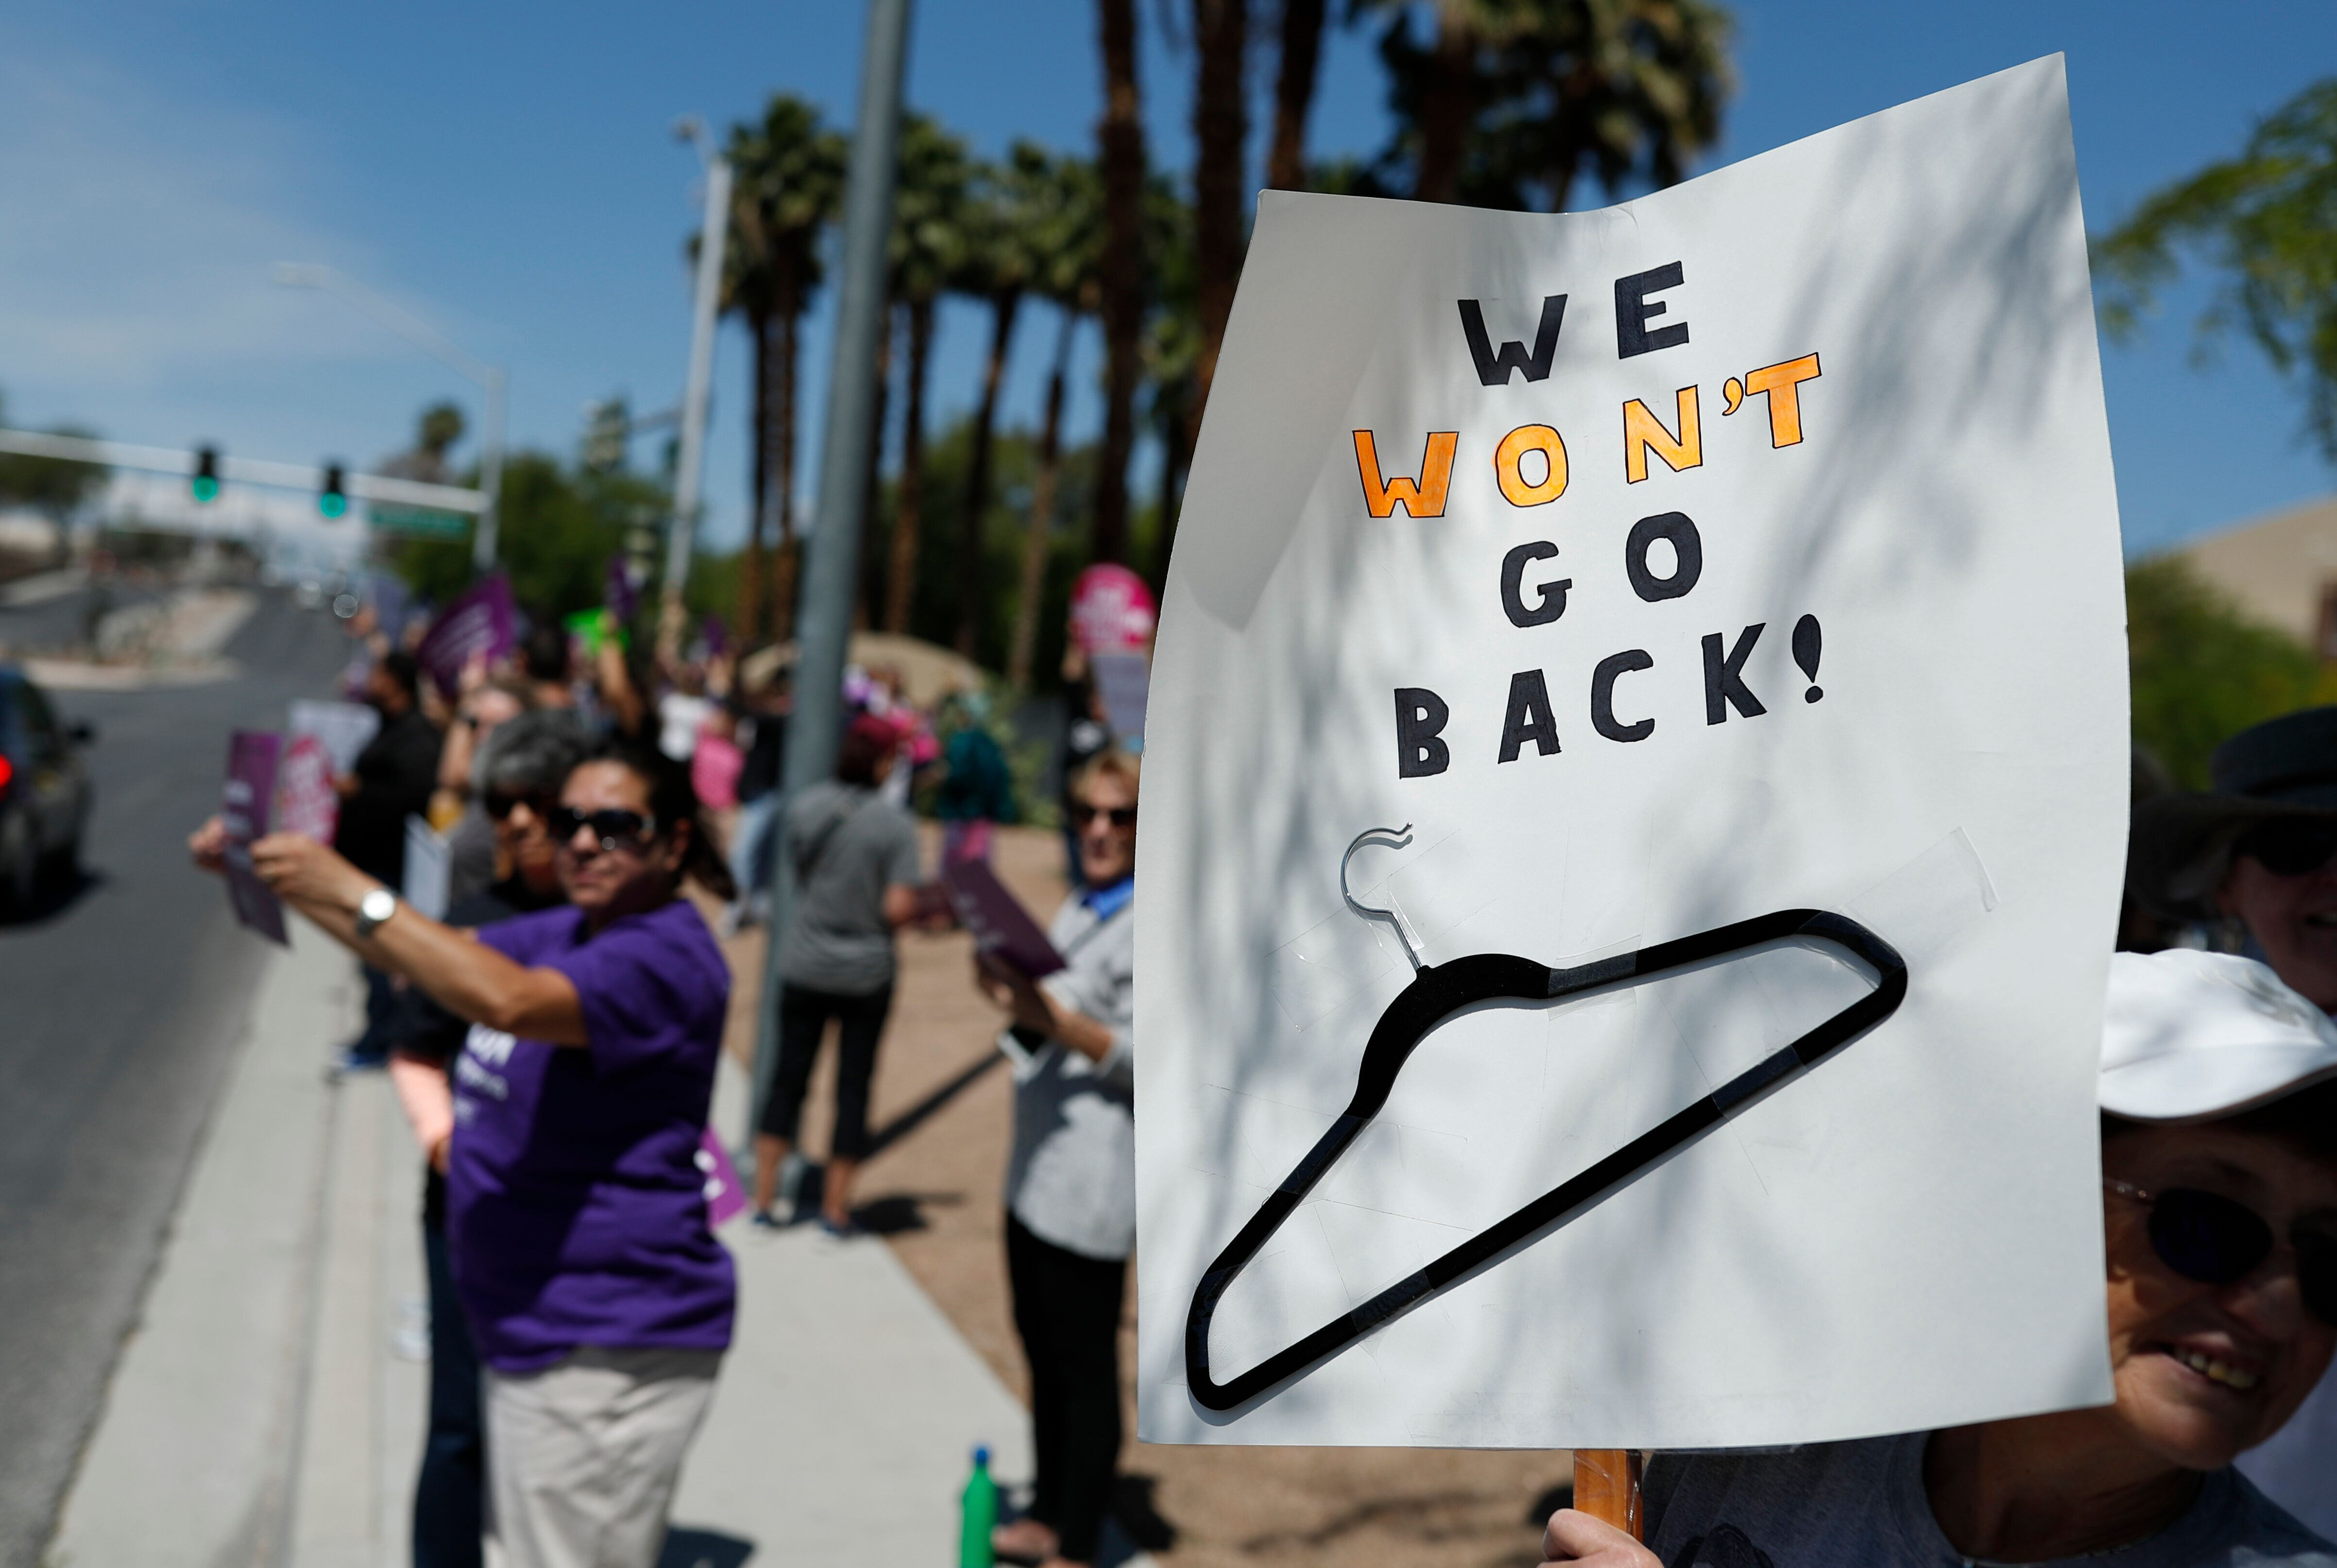 People rally in support of abortion rights Tuesday, May 21, 2019, in Las Vegas. (AP Photo/John Locher)